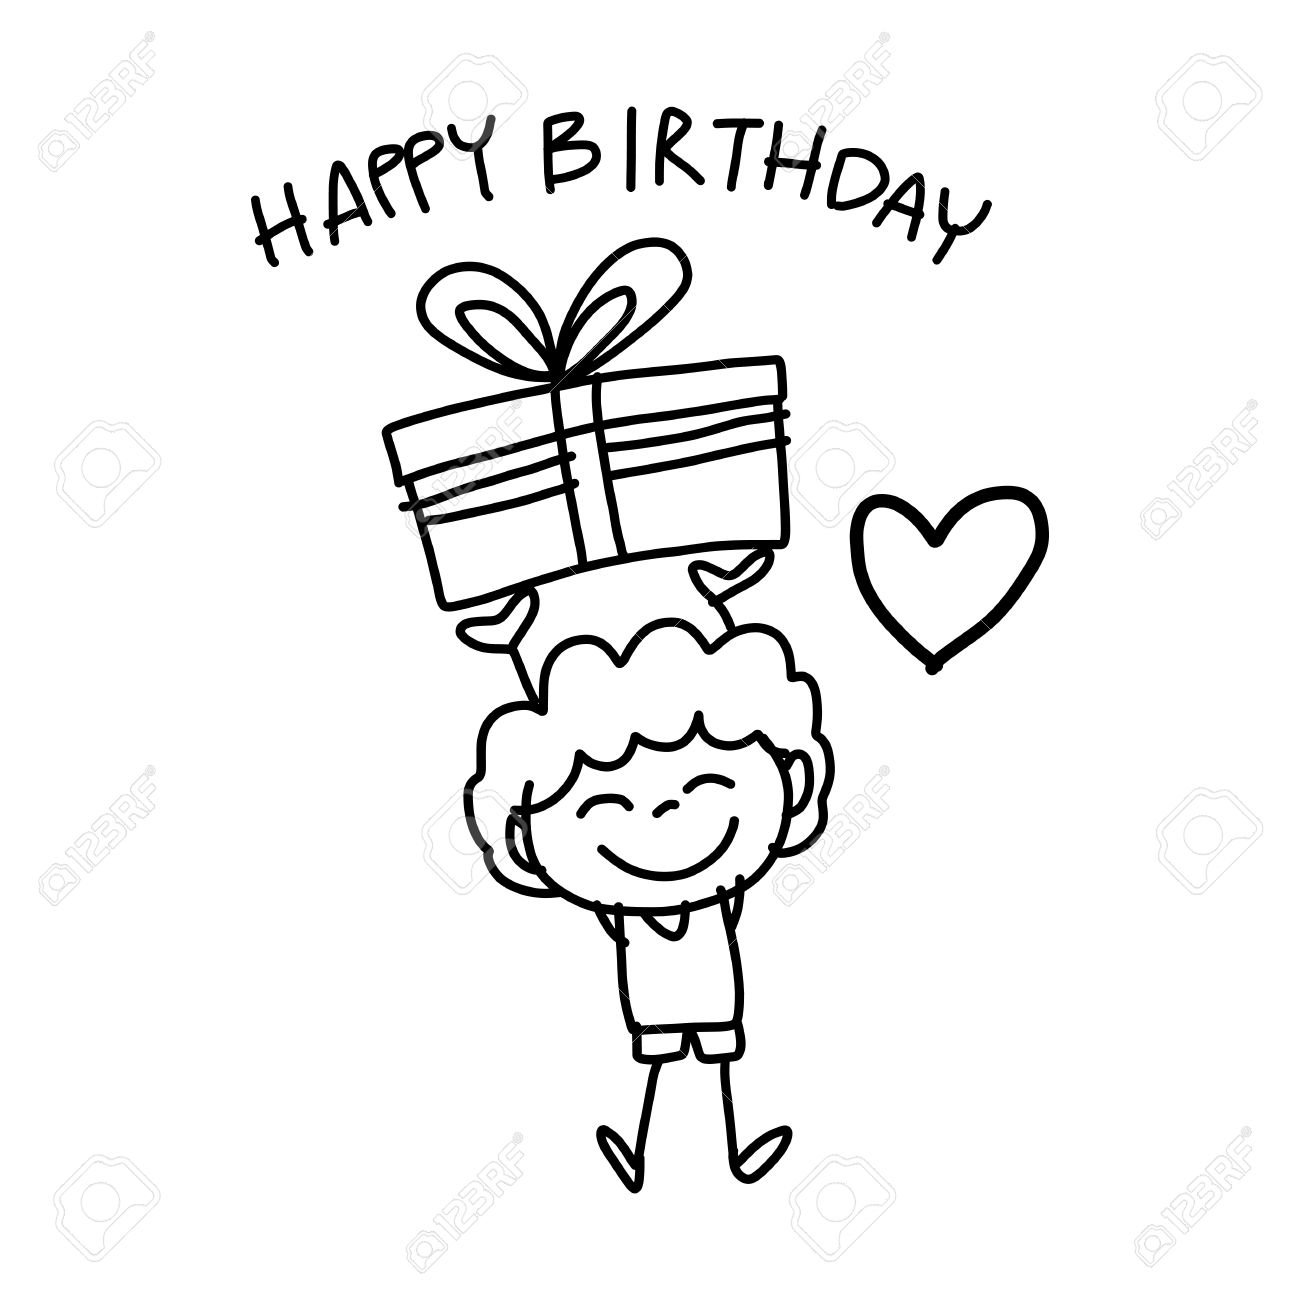 drawing of birthday greeting cards ; drawing-of-happy-birthday-hand-drawing-cartoon-happy-birthday-royalty-free-cliparts-vectors-1